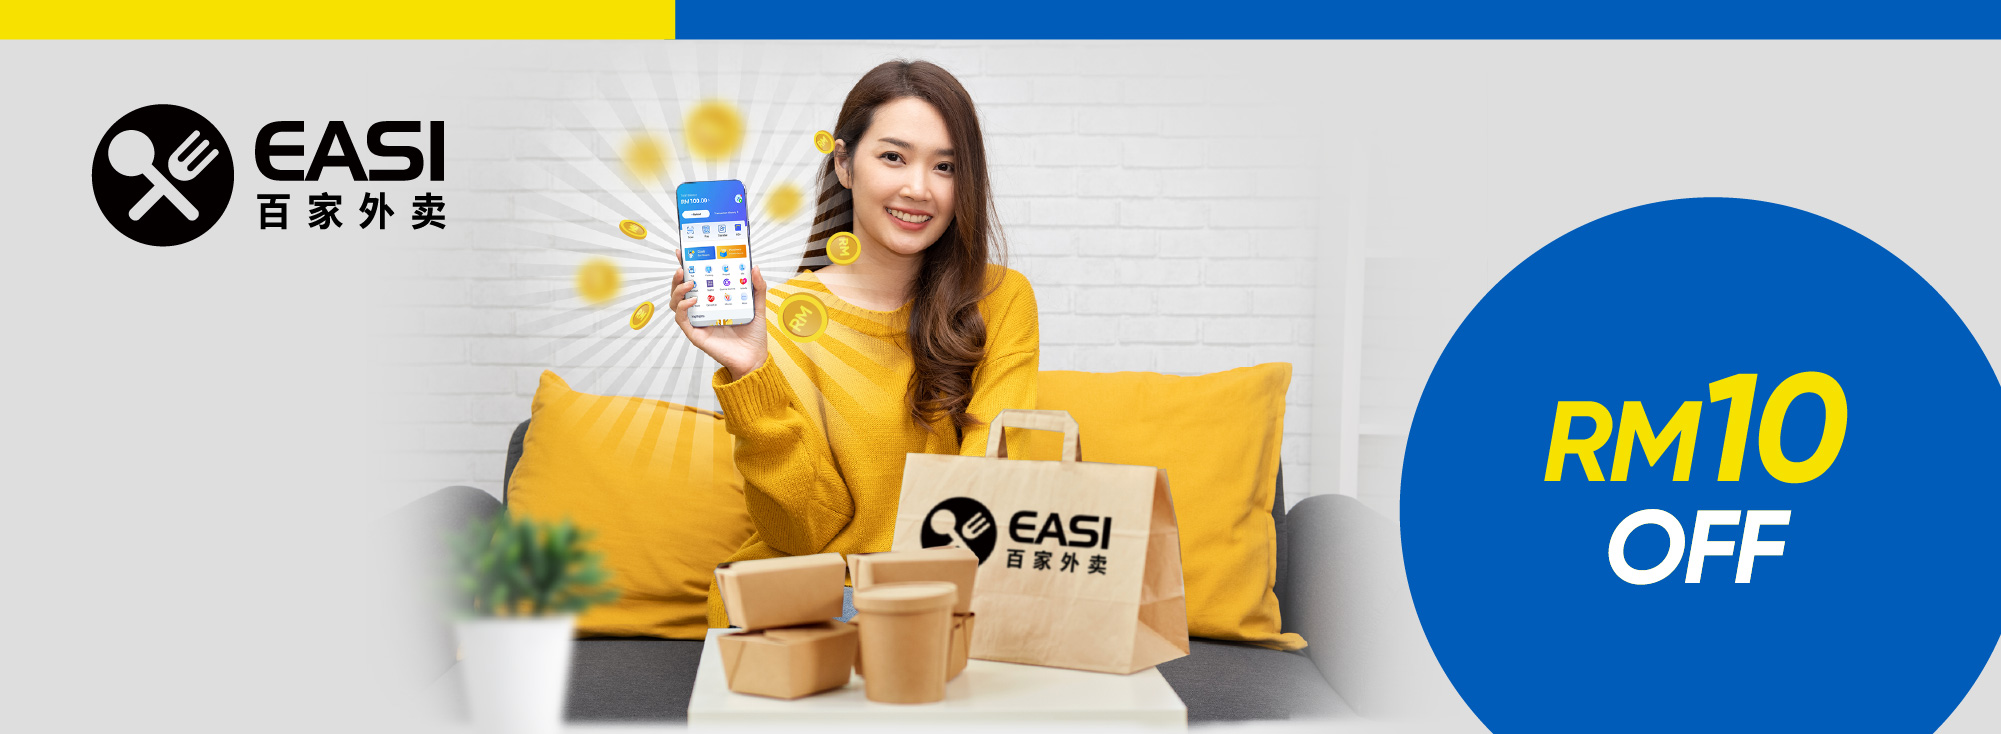 RM10 OFF with EASI